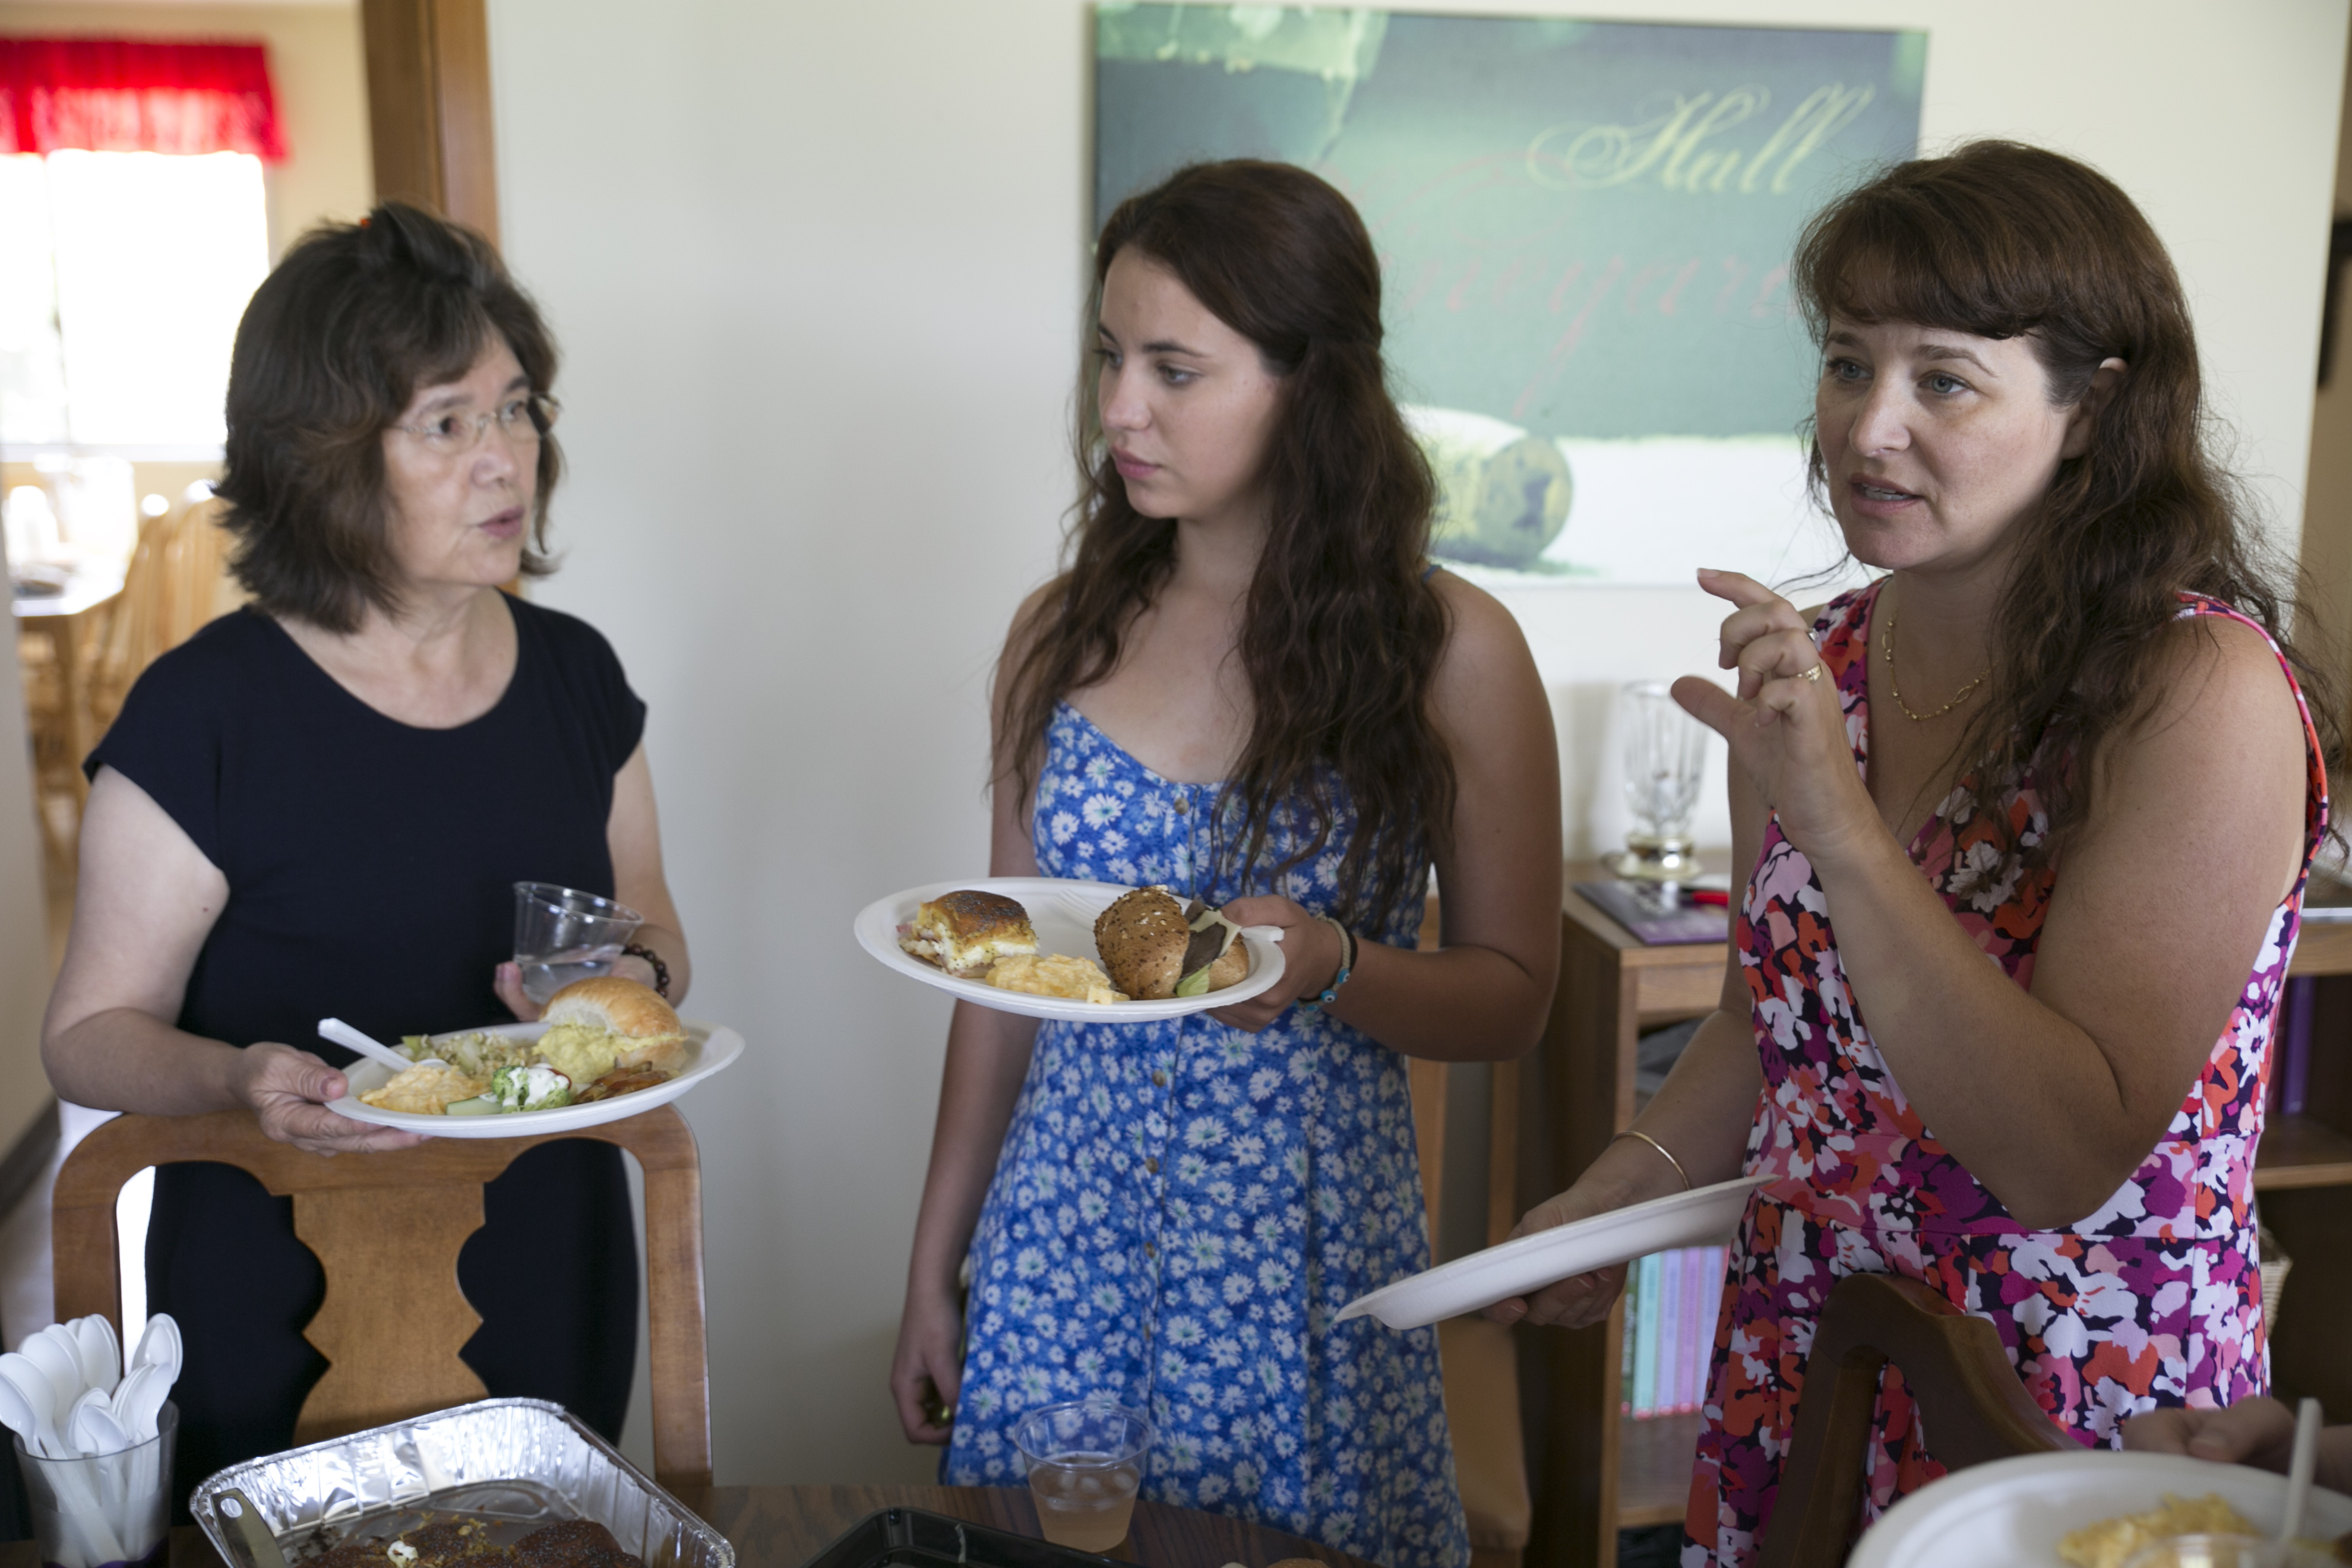 Three women standing with plates of food in their hands